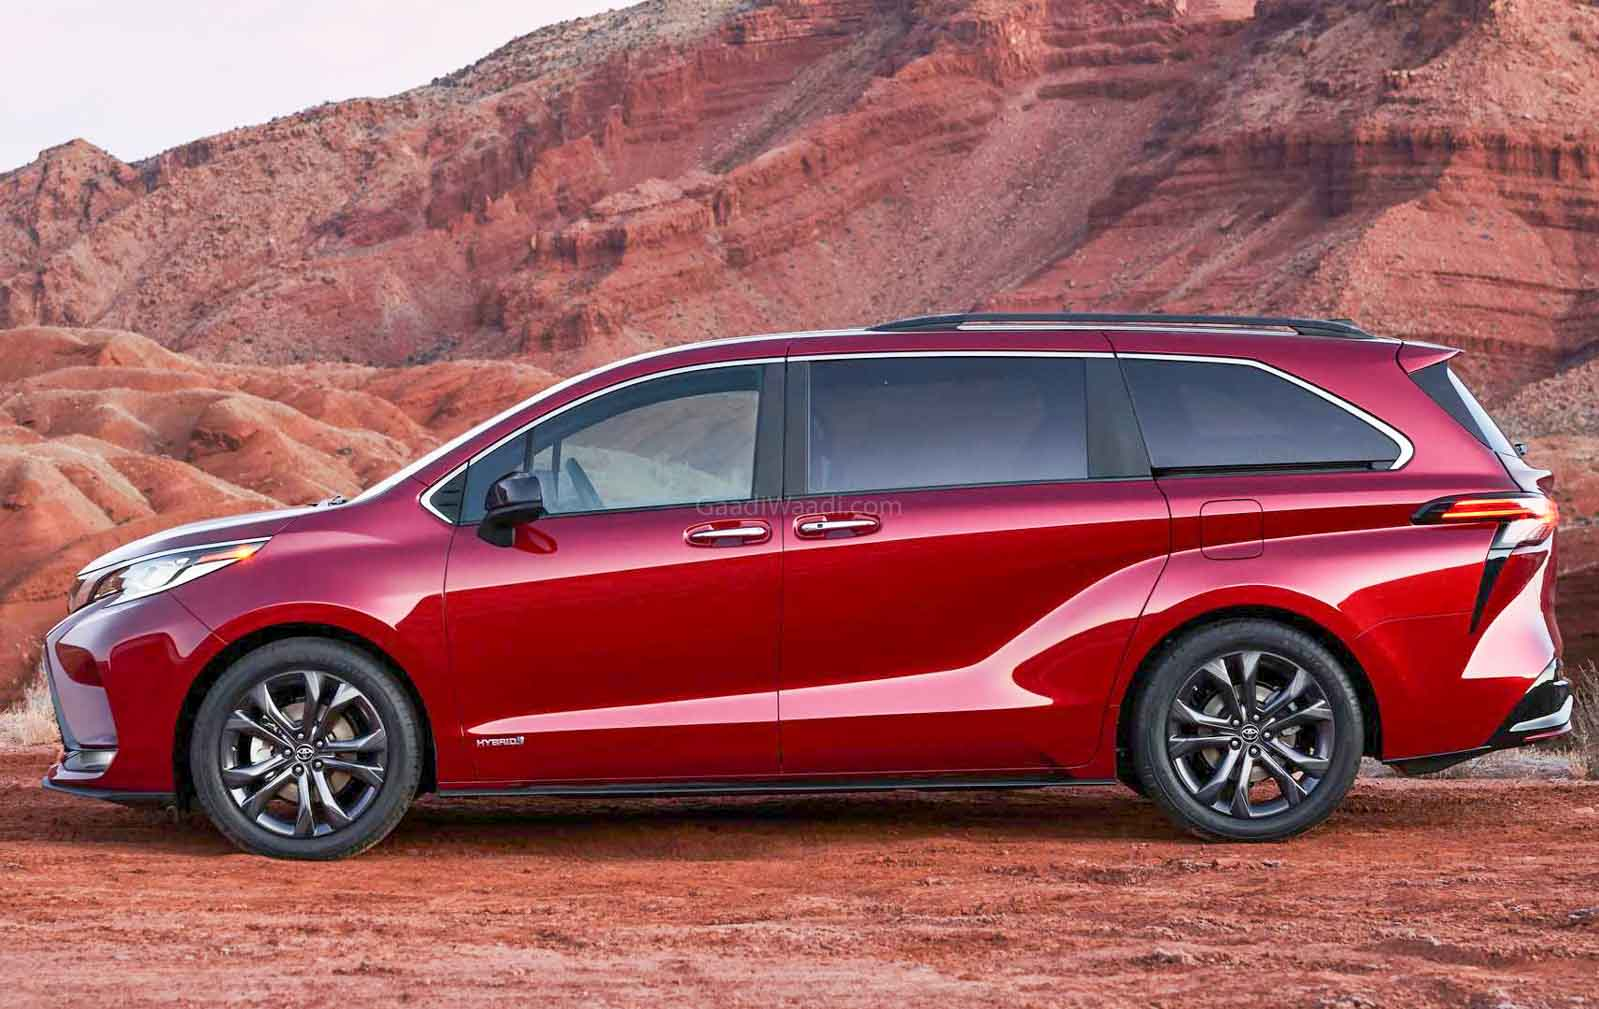 all new 2021 toyota sienna hybrid mpv with 2 electric motors revealed glbnews com all new 2021 toyota sienna hybrid mpv